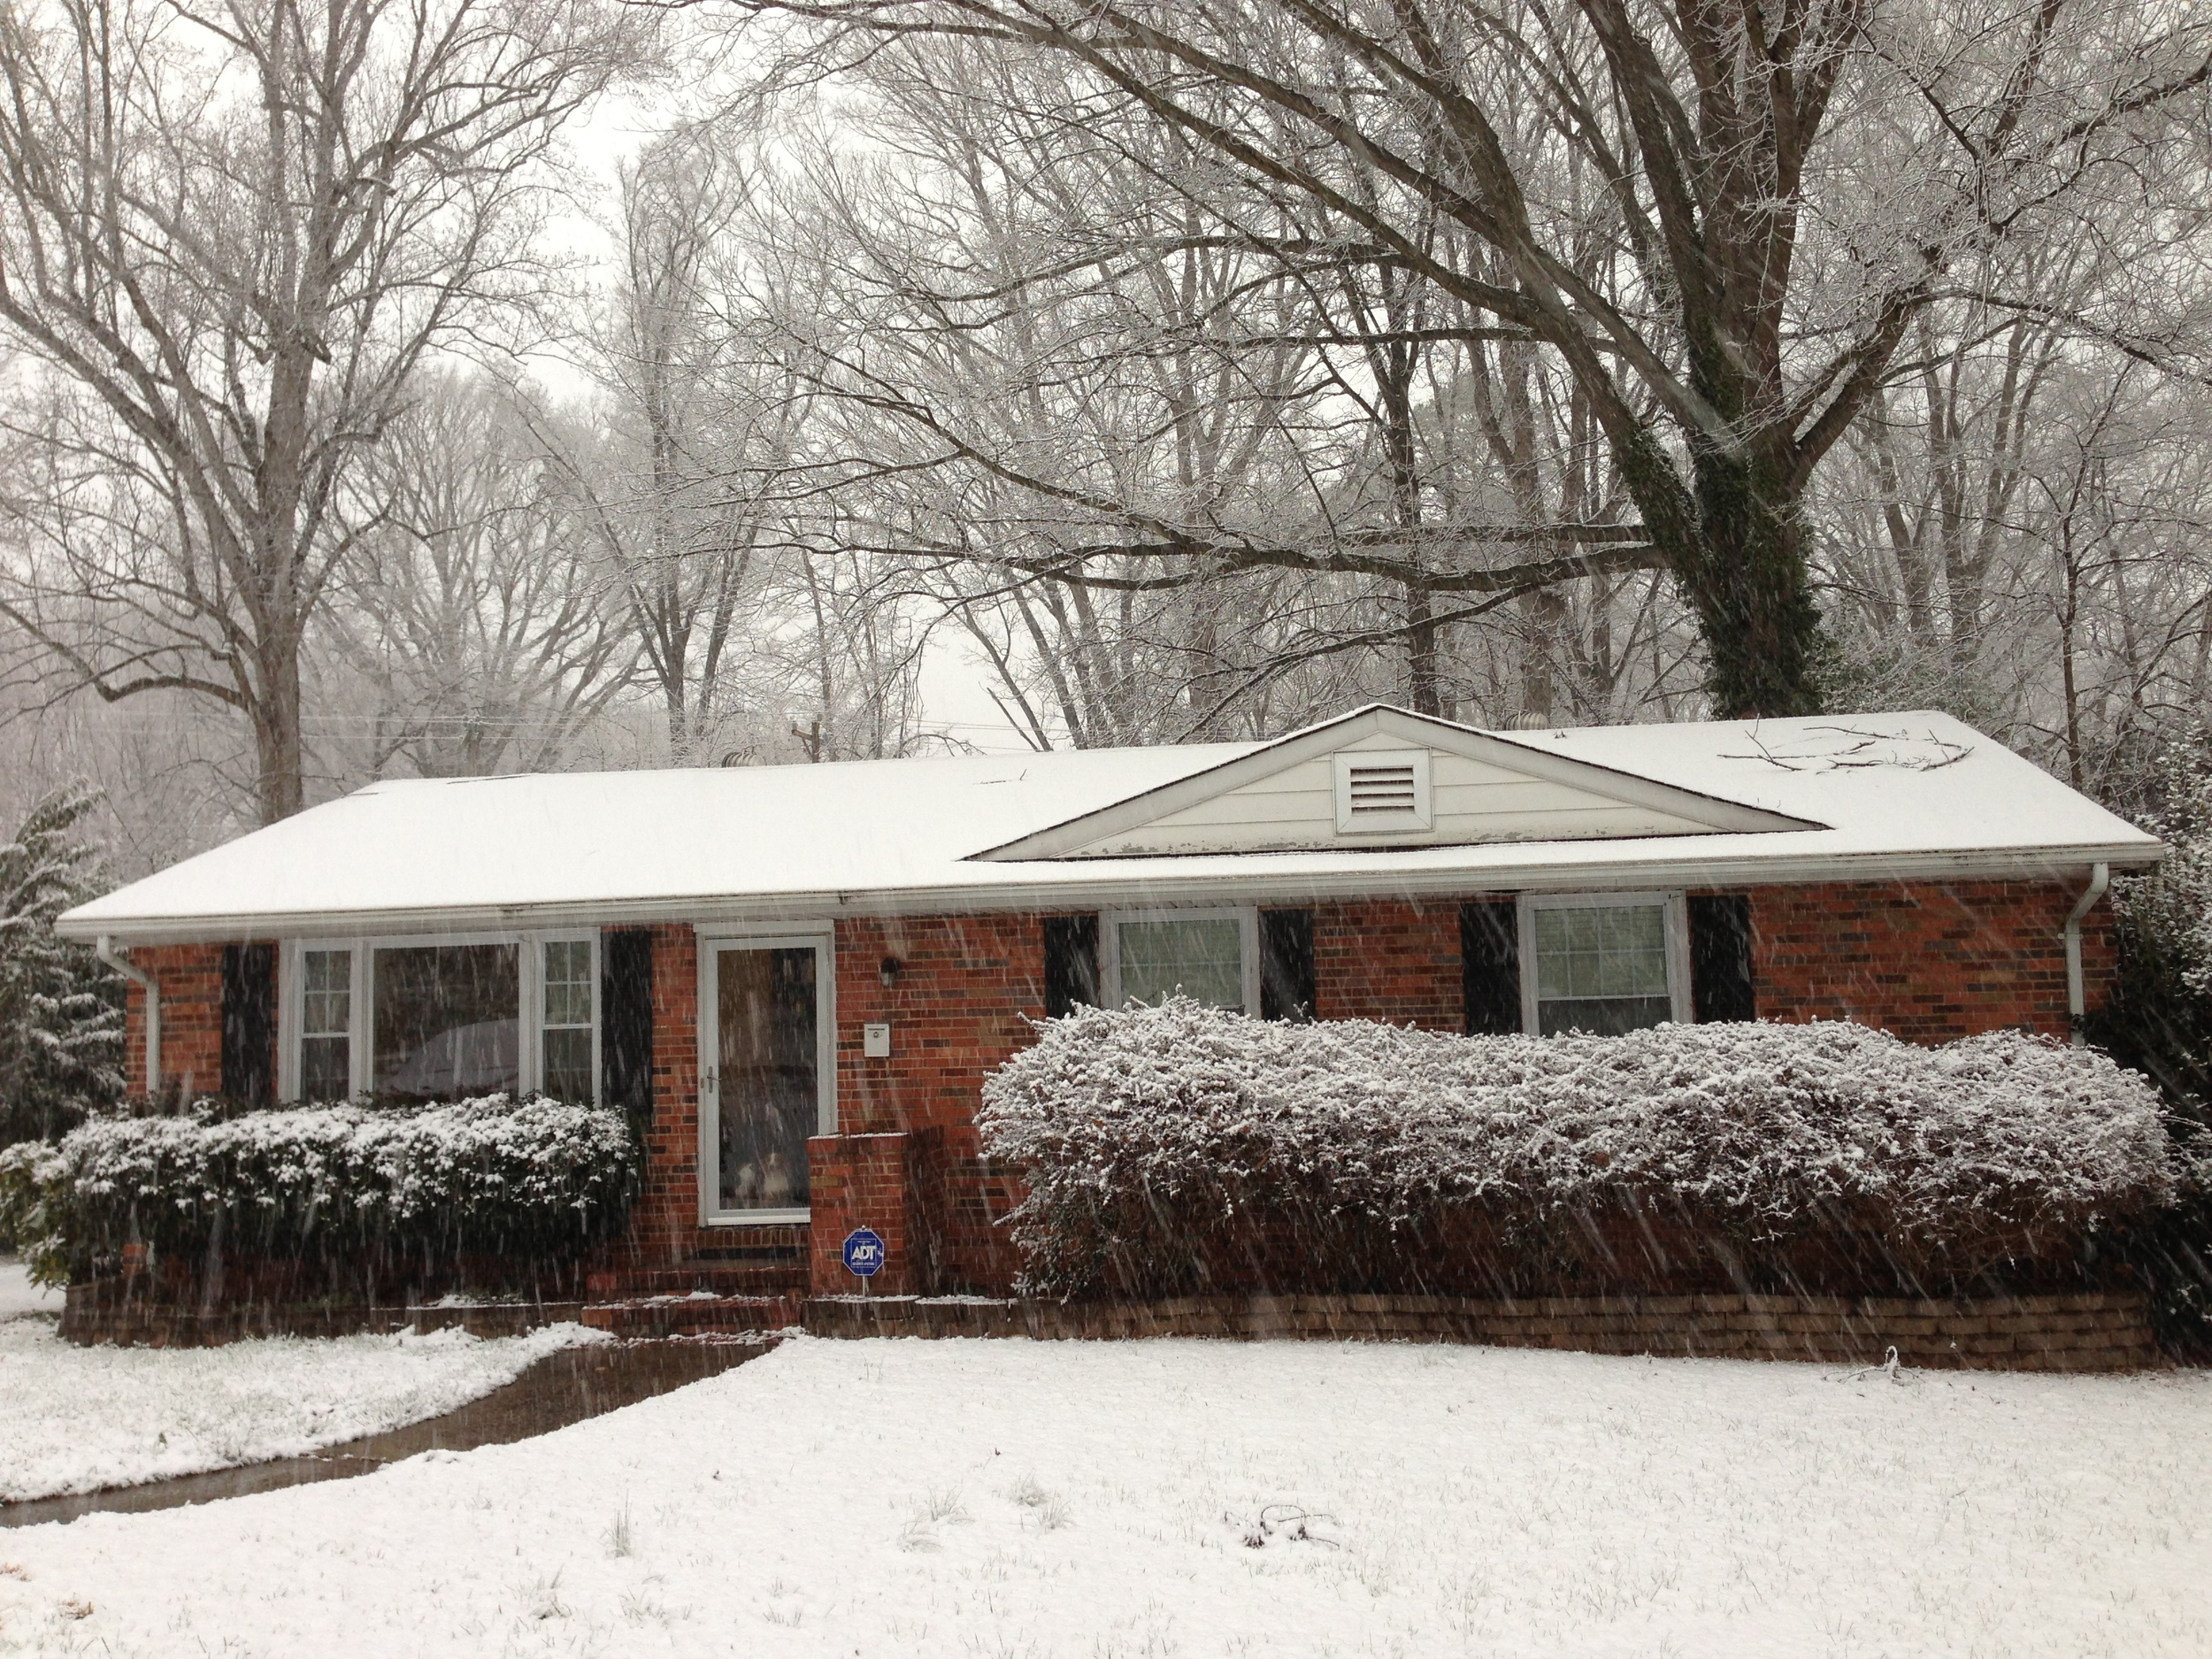 A snowy day at our house in Charlotte